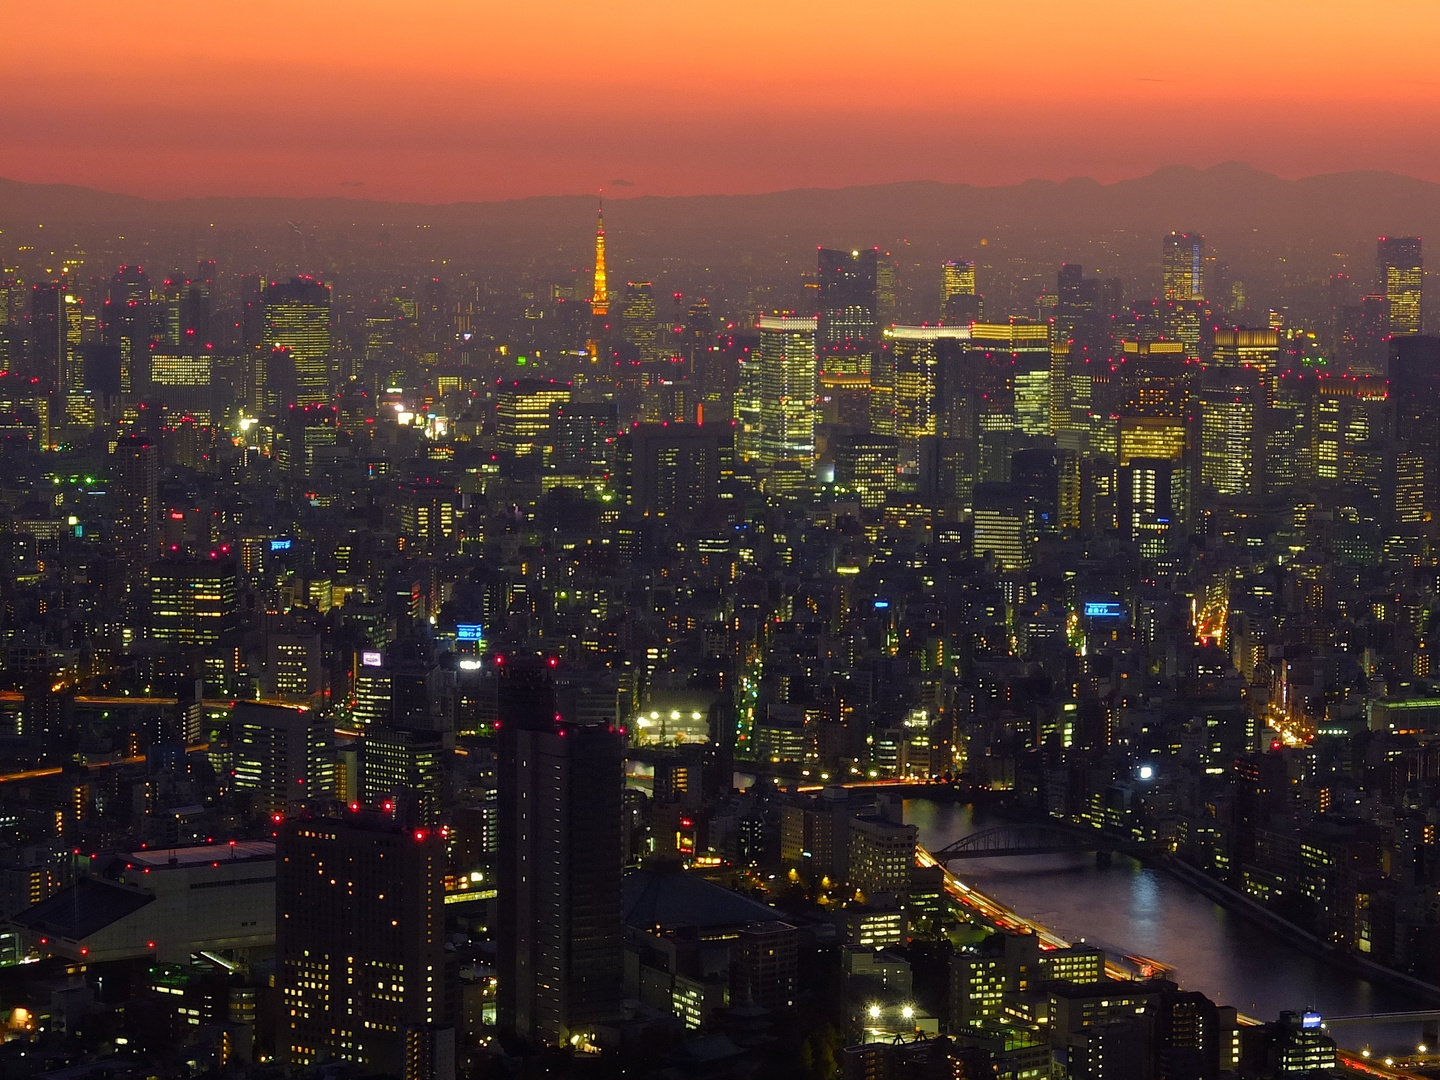 Tokyo seen from Skytree